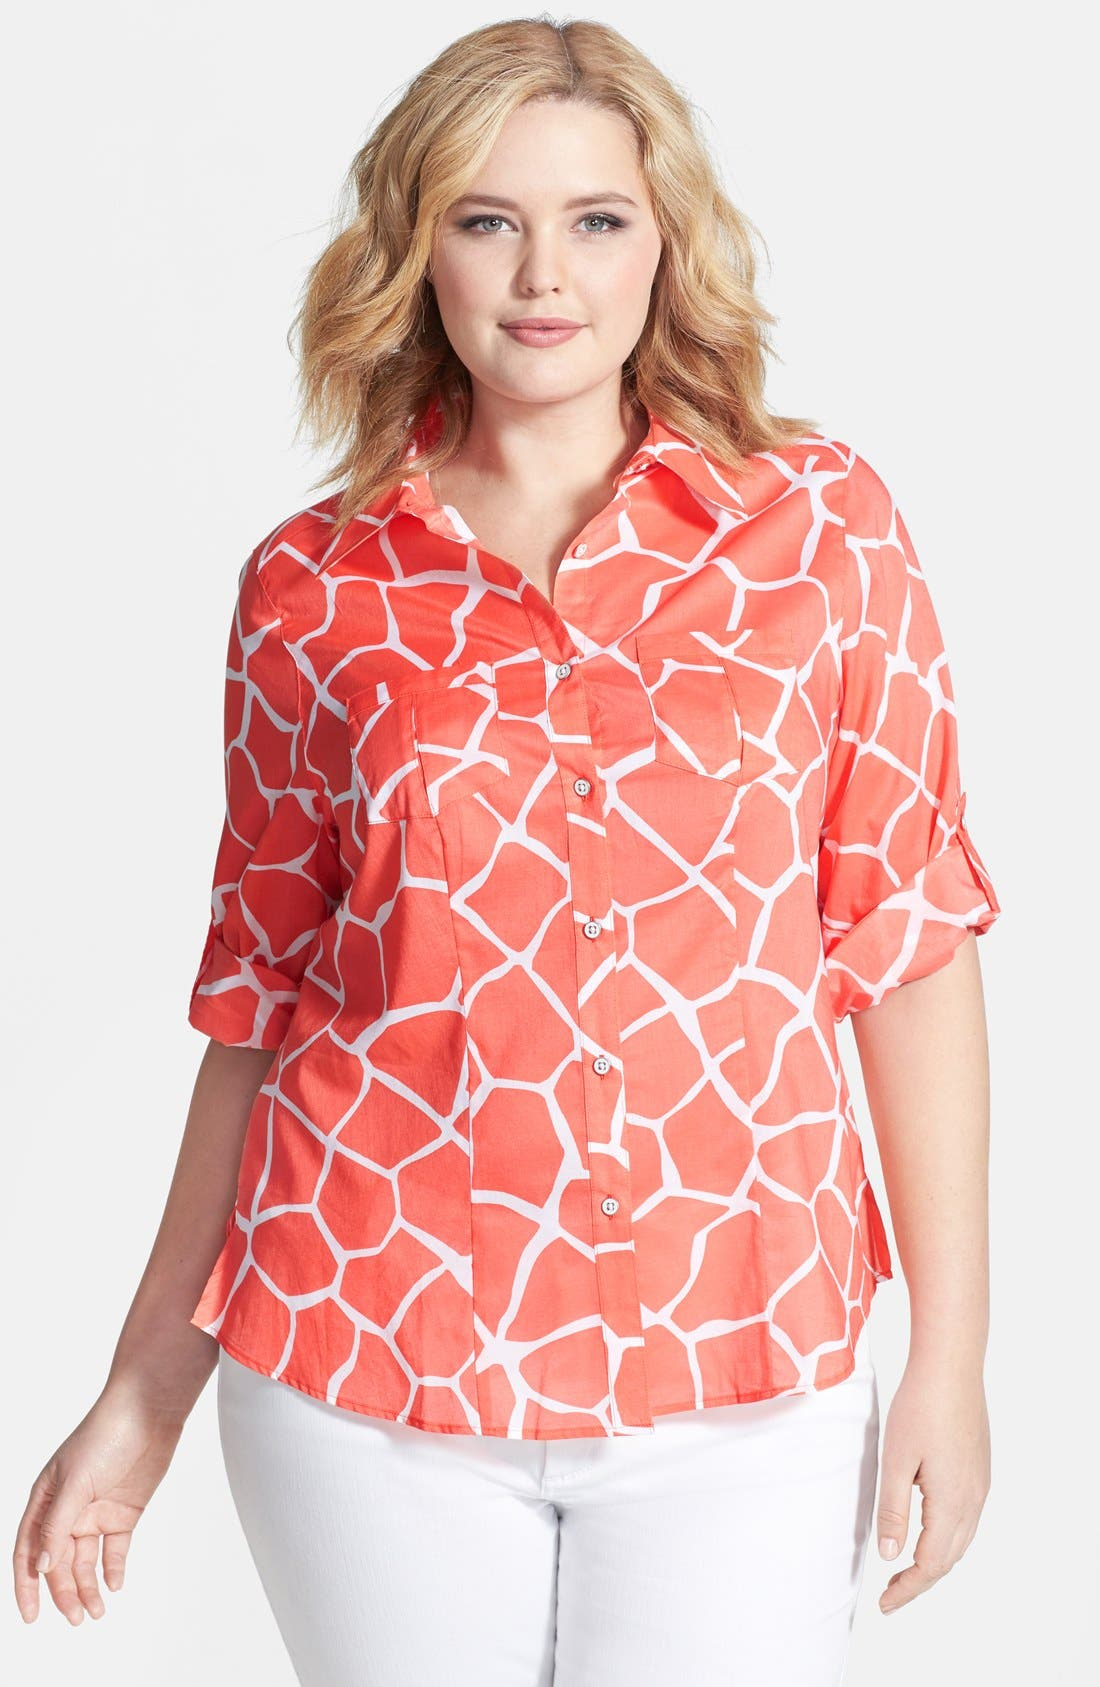 Alternate Image 1 Selected - Foxcroft Fitted Giraffe Print Cotton Roll Sleeve Shirt (Plus Size)